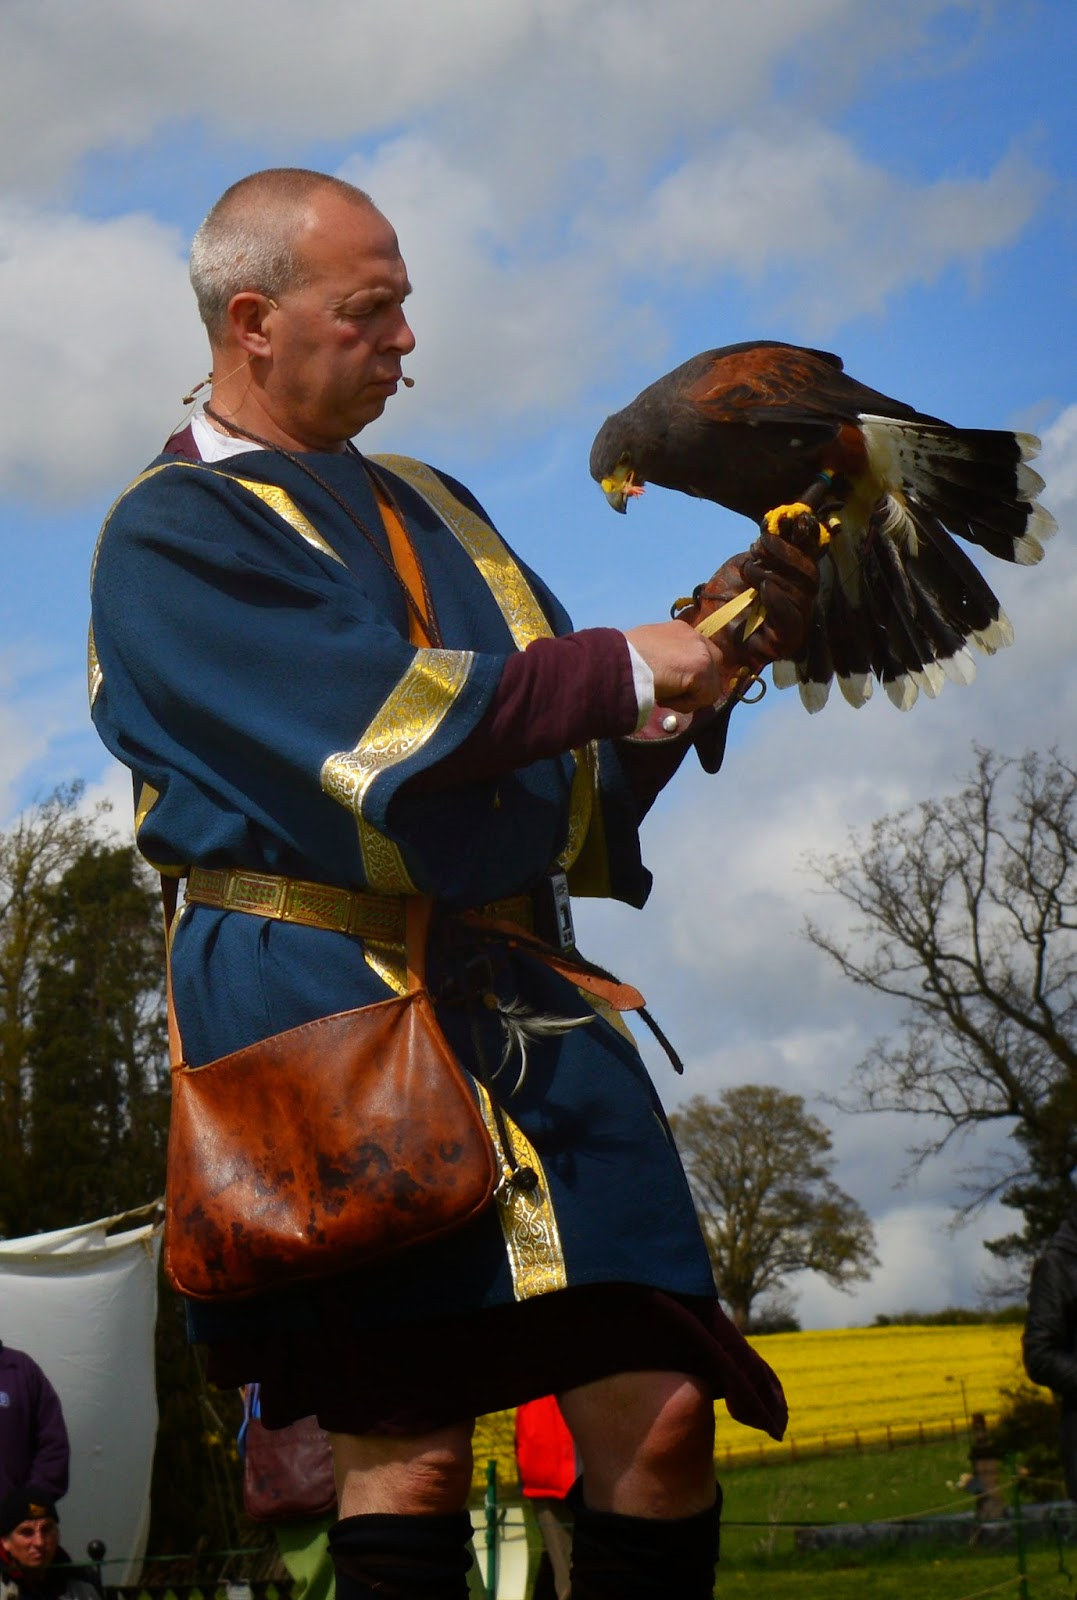 Hadrian's Wall Live 2016 | Birdoswald Roman Fort & Housesteads - A Review - Roman falconry